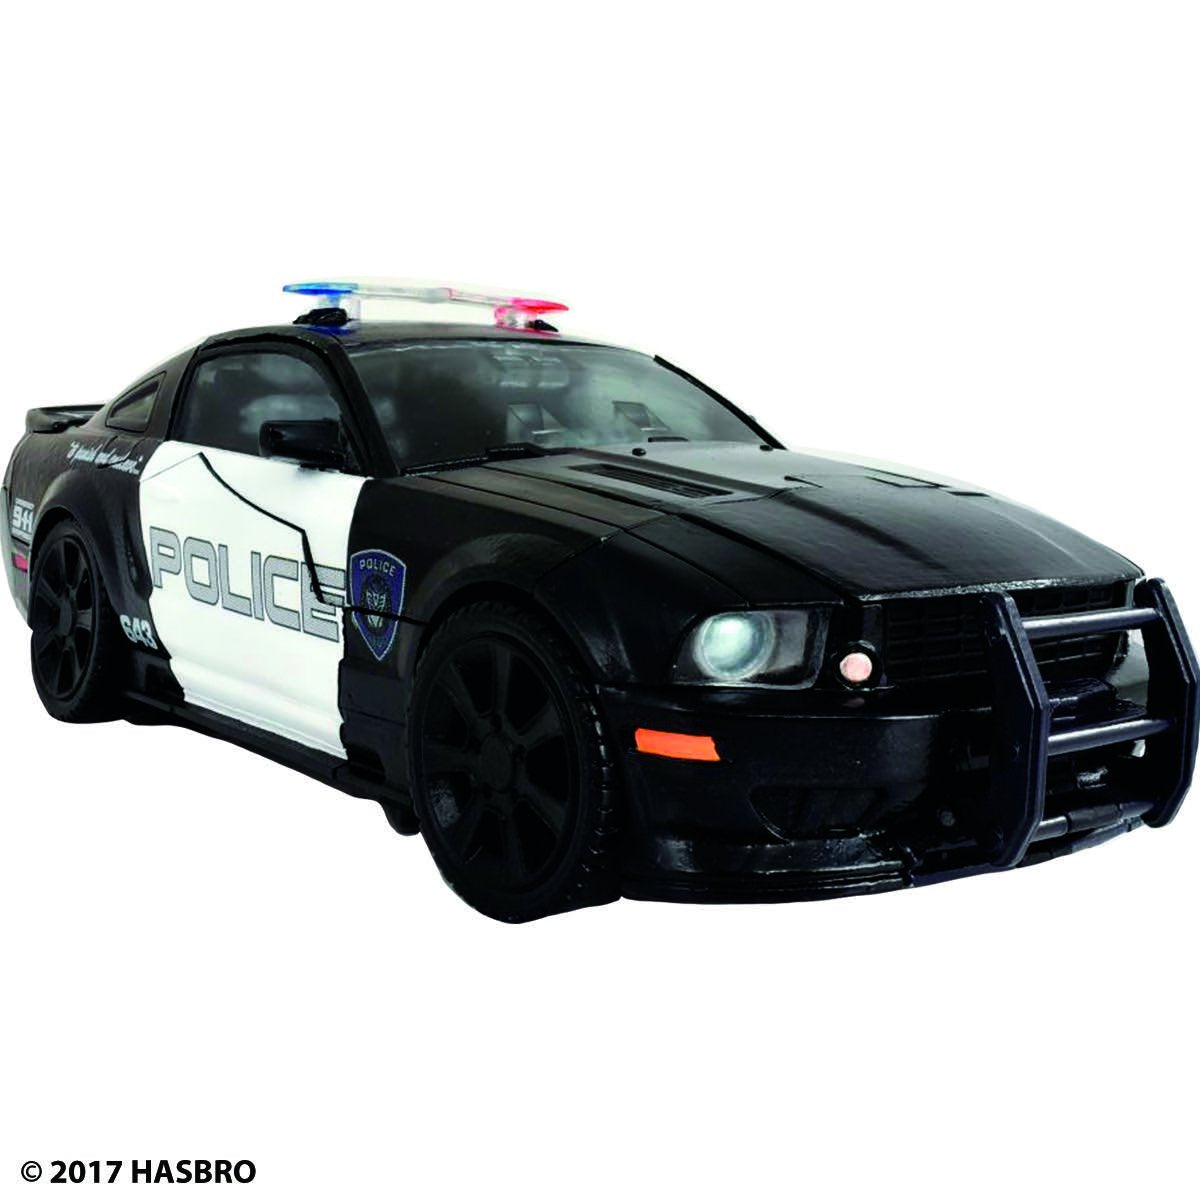 TakaraTomy - Transformers Masterpiece Movie Series - MPM-5 - Barricade